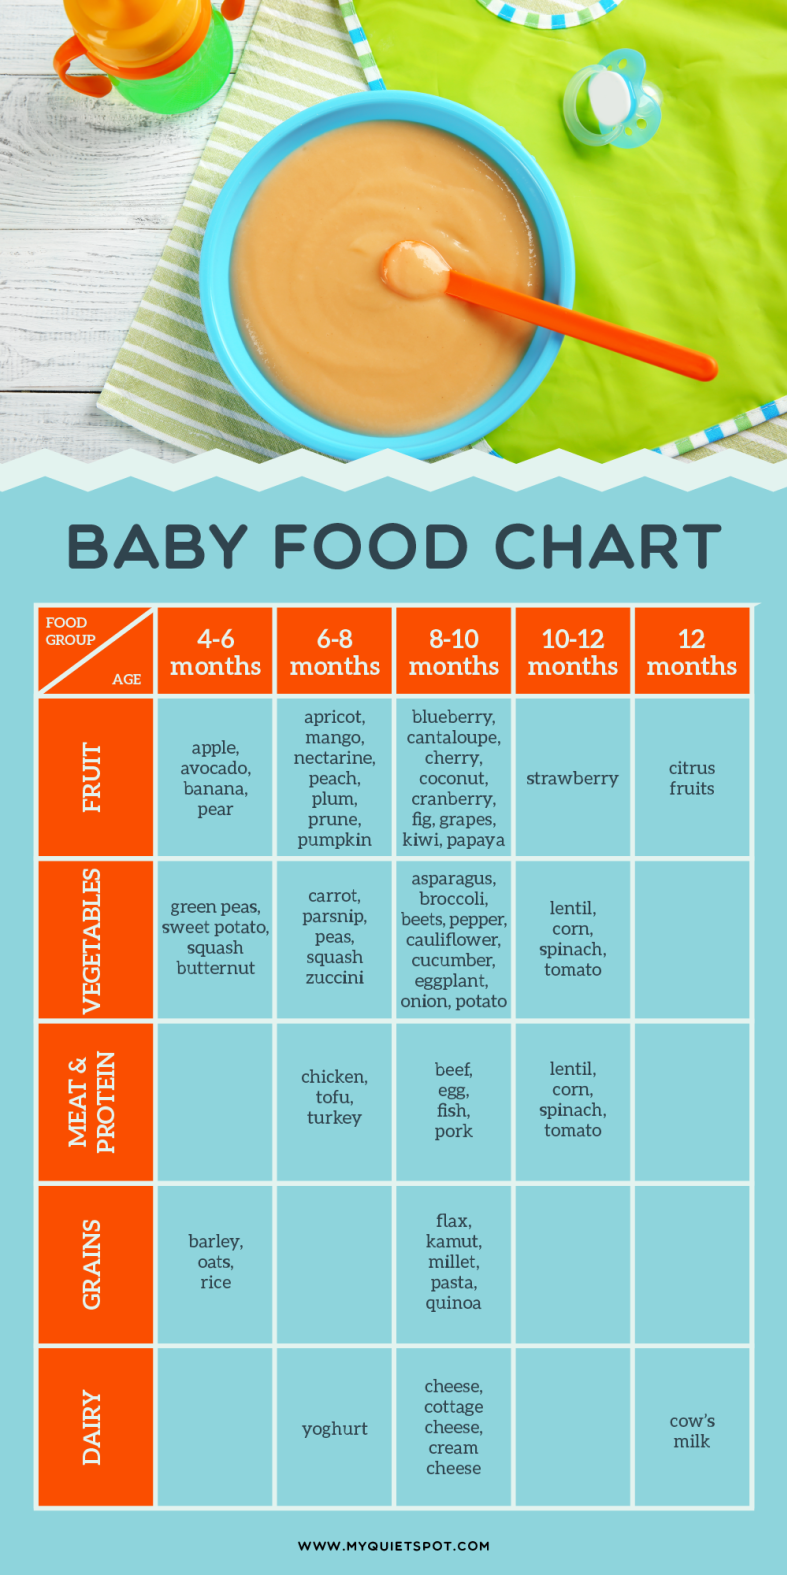 Baby Food Chart With Images Baby Food Recipes